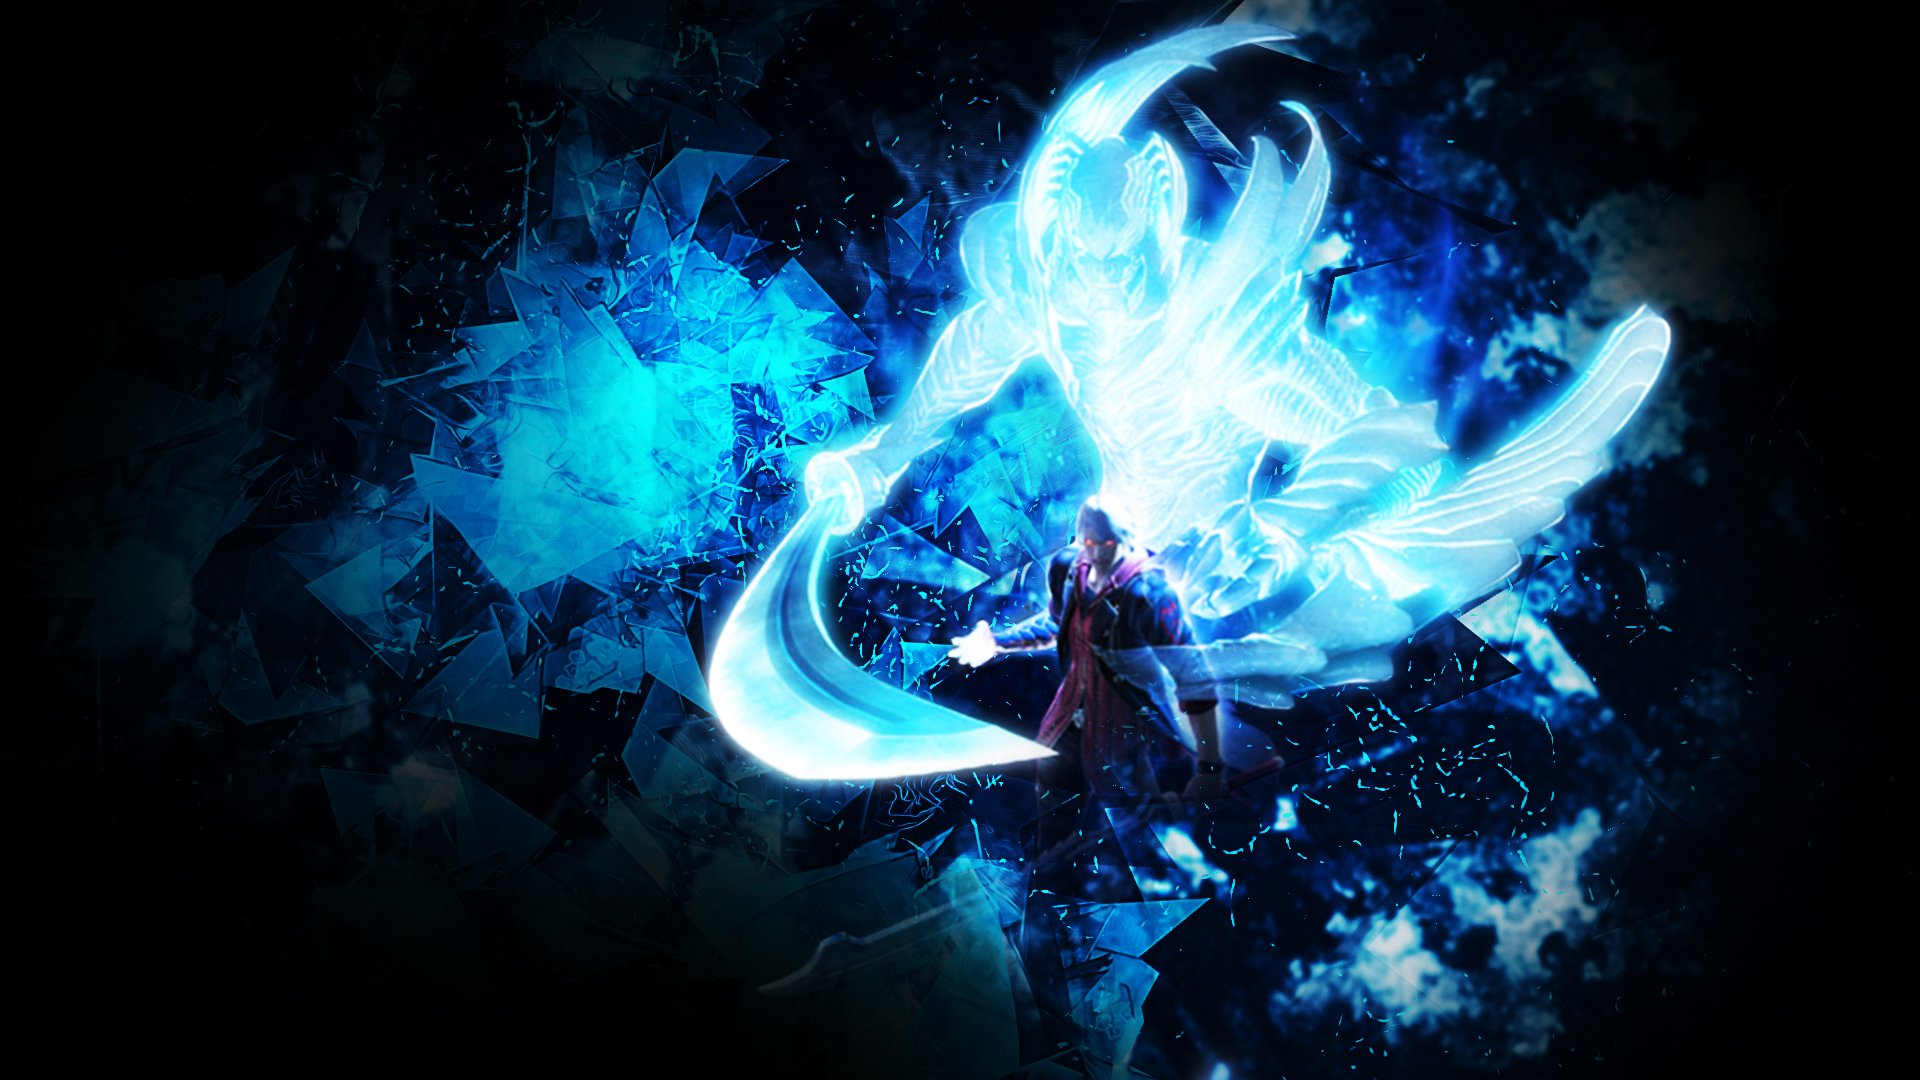 41 devil may cry 4 hd wallpapers | background images - wallpaper abyss